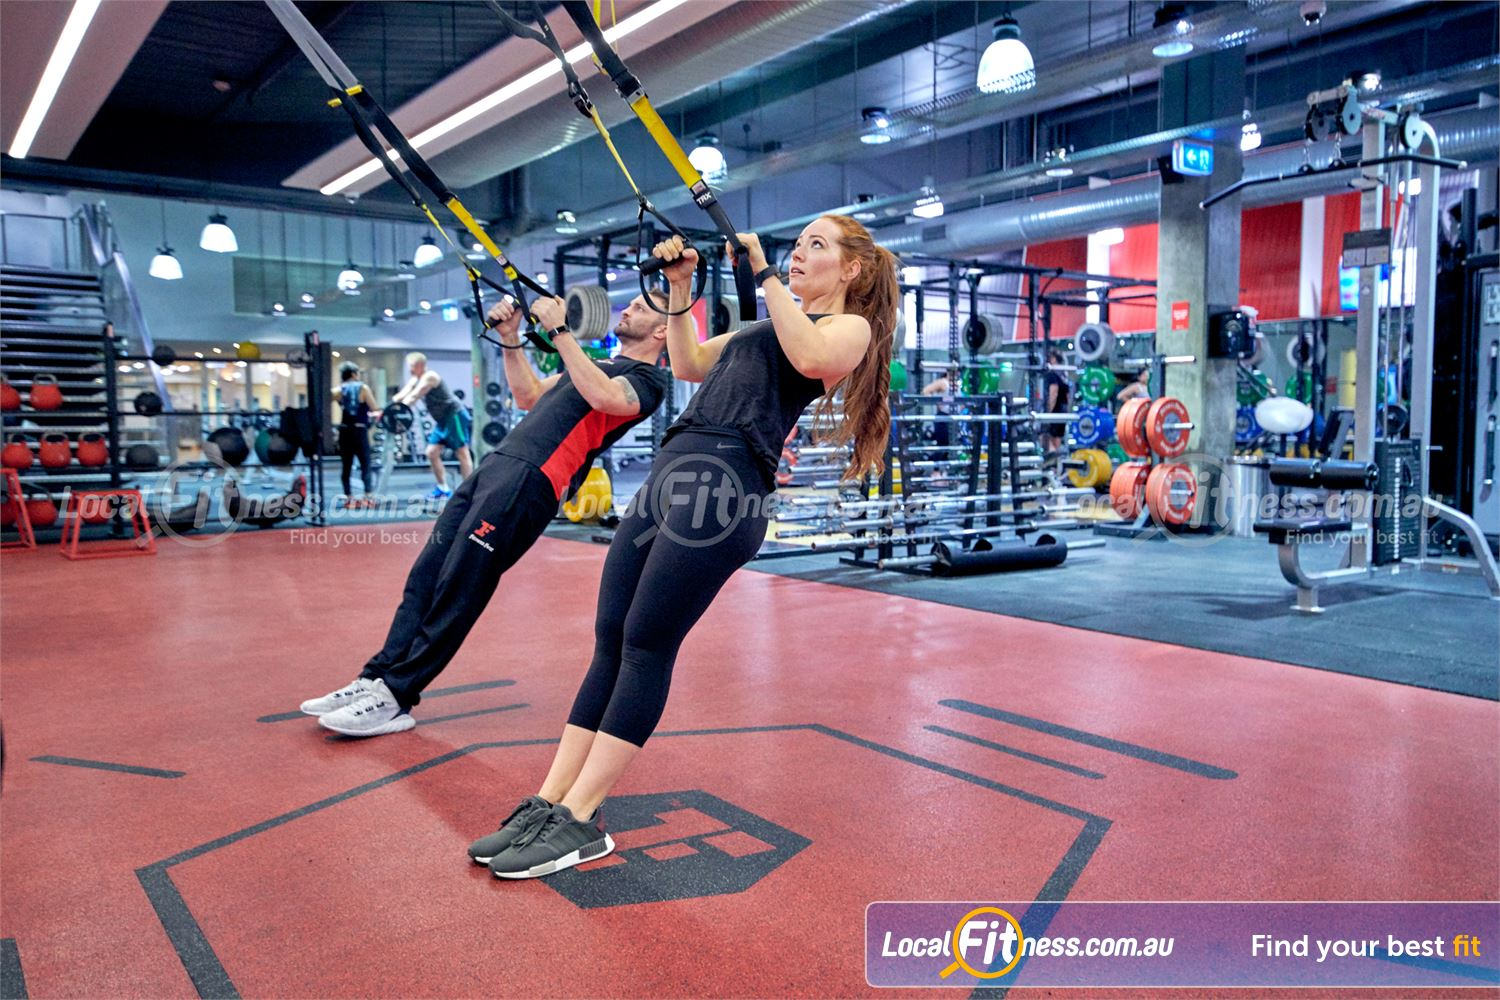 Fitness First Near North Rocks Join our range of popular classes such as freestyle strength.